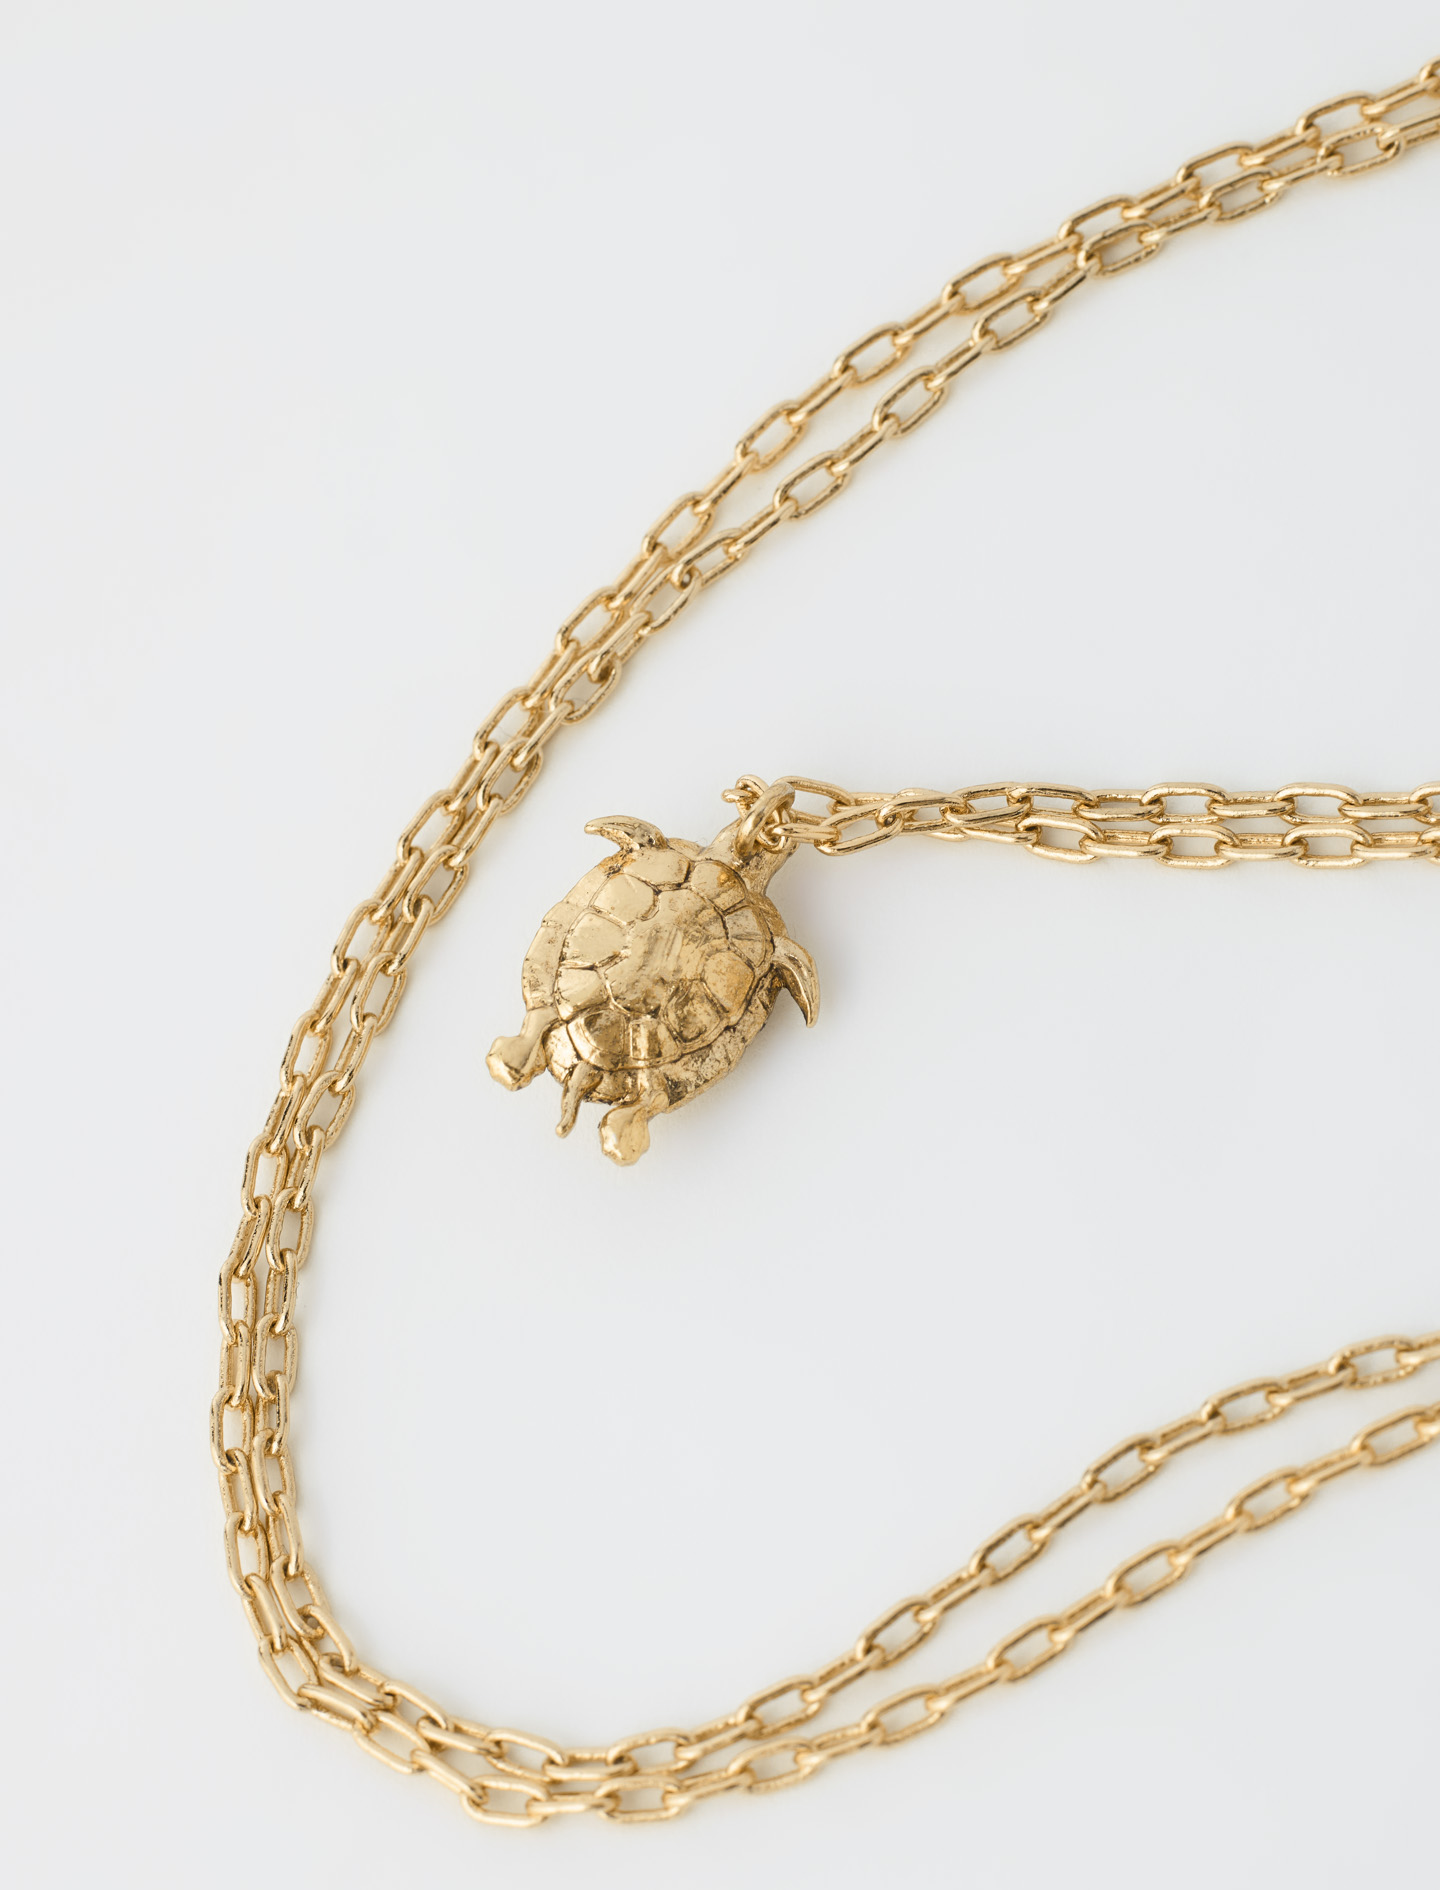 Turtle necklace in gold by Maje Paris